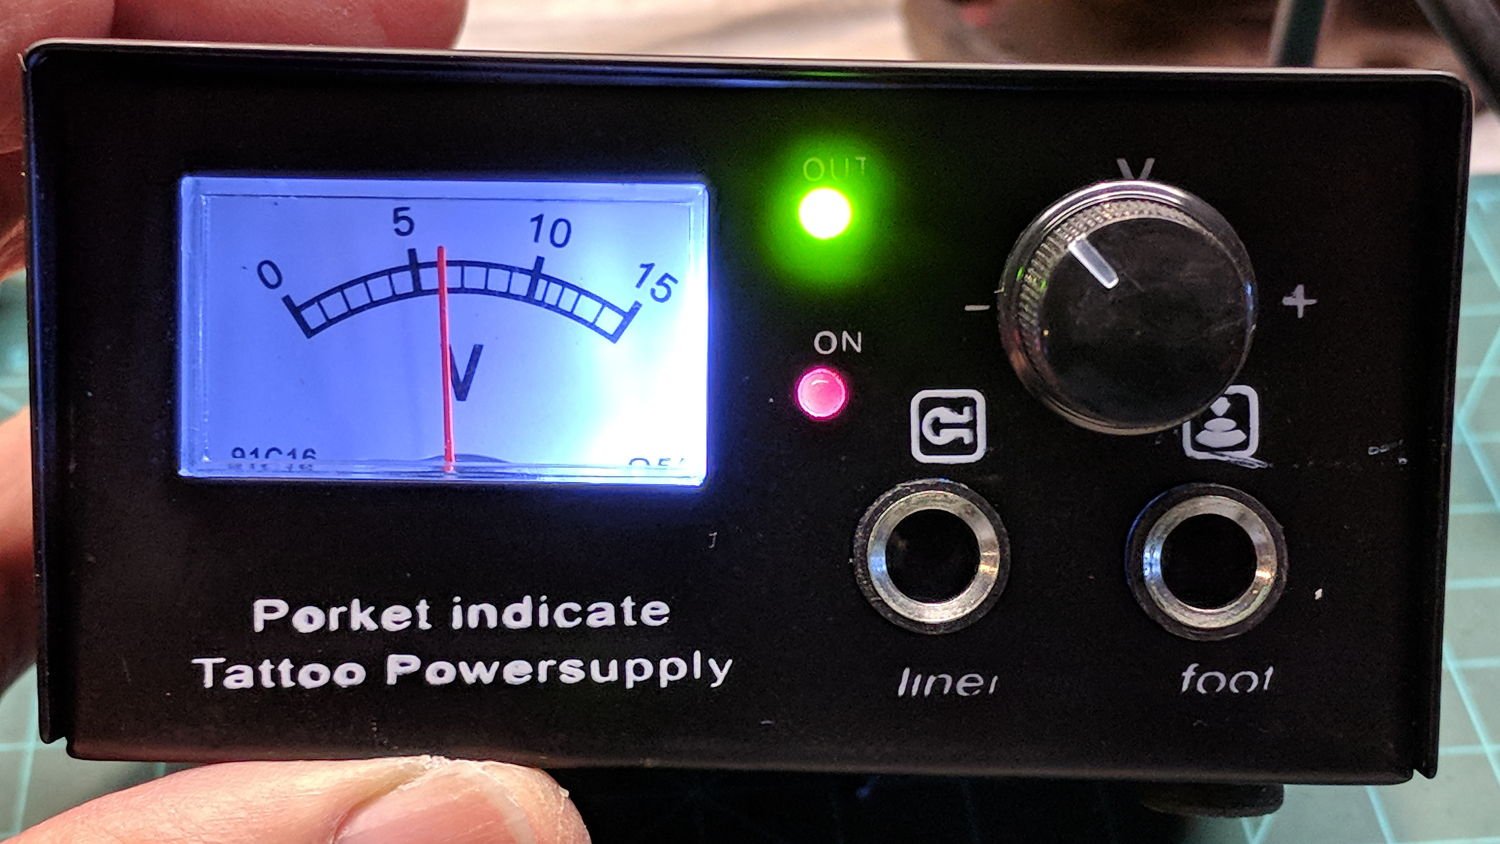 Porket Indicate Tattoo Power Supply Wiring Diagram - Simple Wiring - Tattoo Power Supply Wiring Diagram